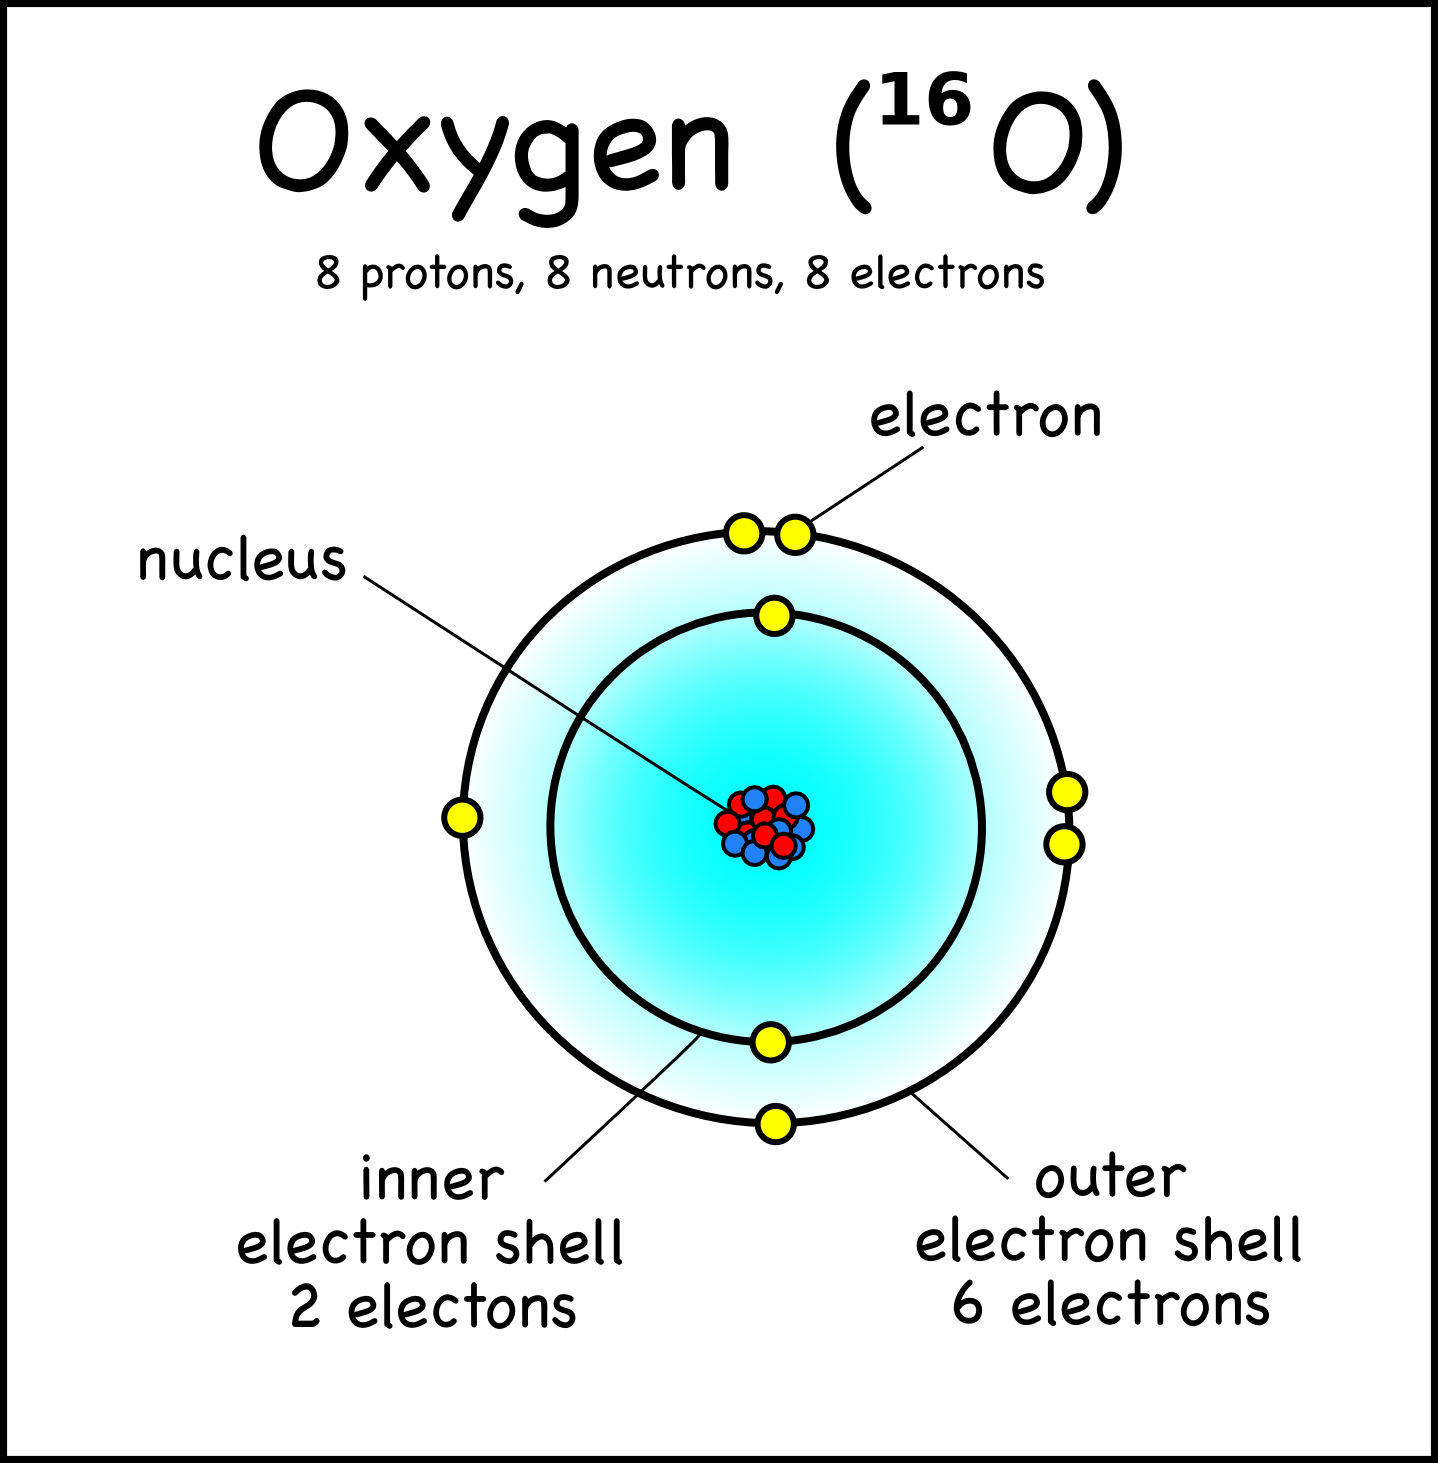 bohr rutherford diagram of helium human ear labeled oxygen google search the characteristics living